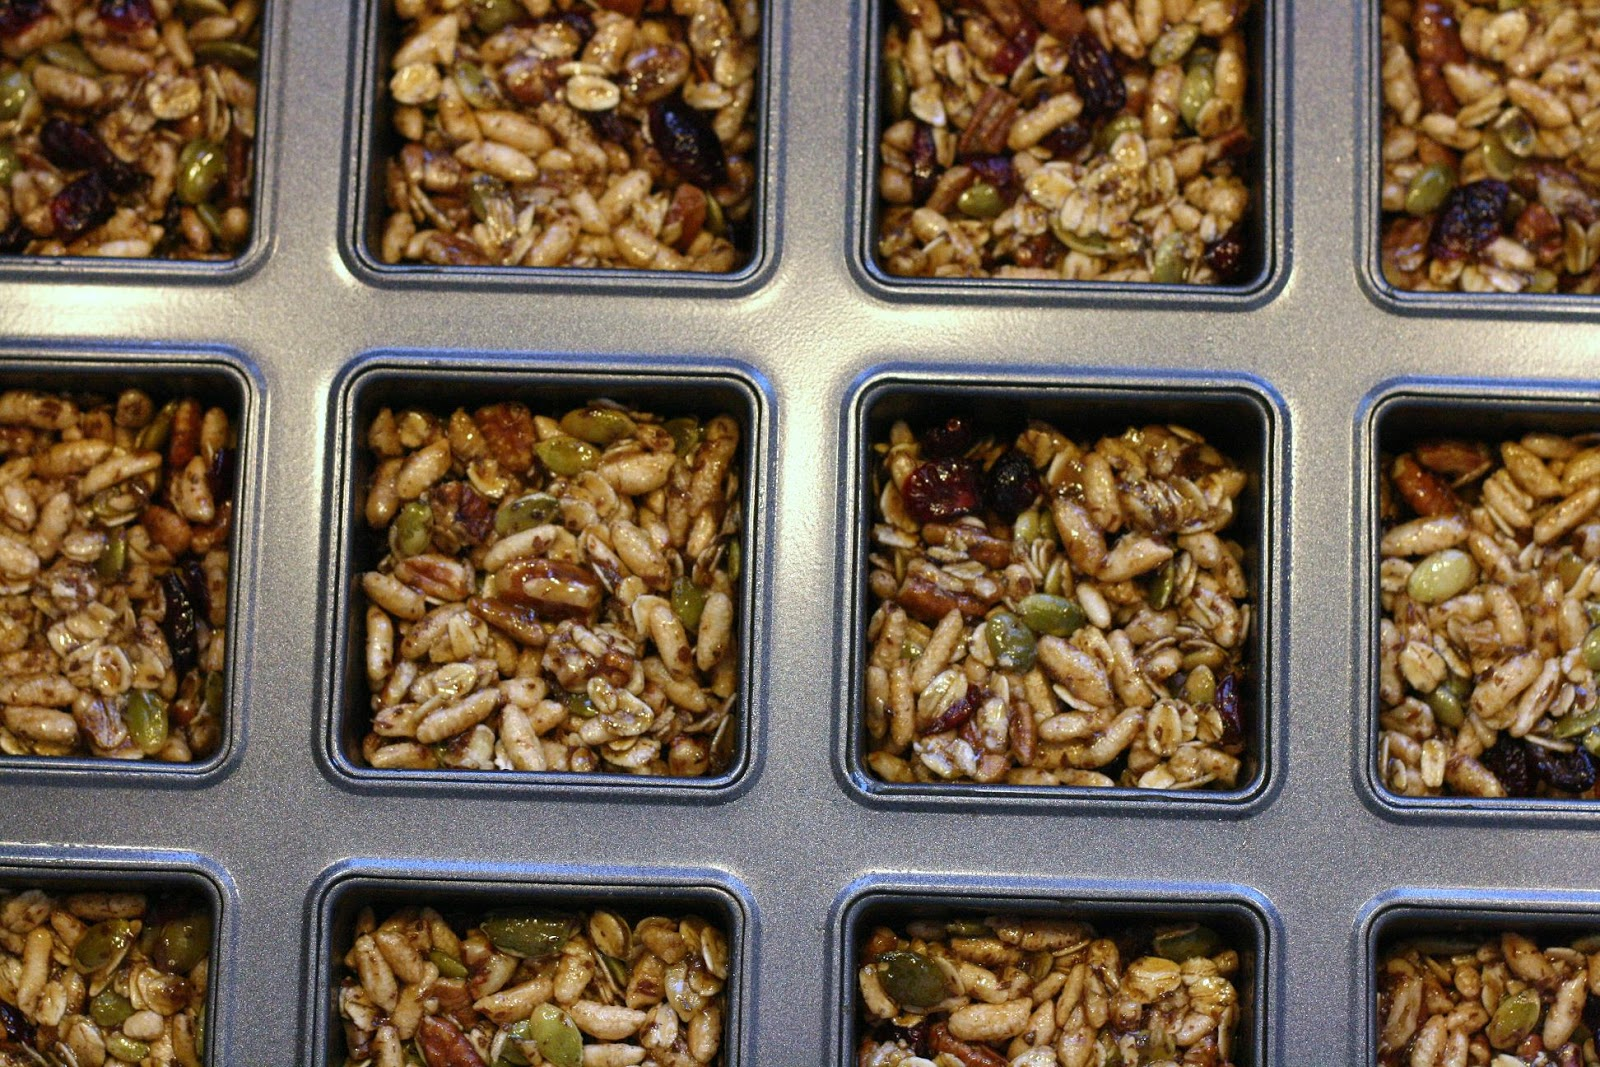 Laine's Recipe Box: Cranberry-Pumpkin Seed Energy Bars